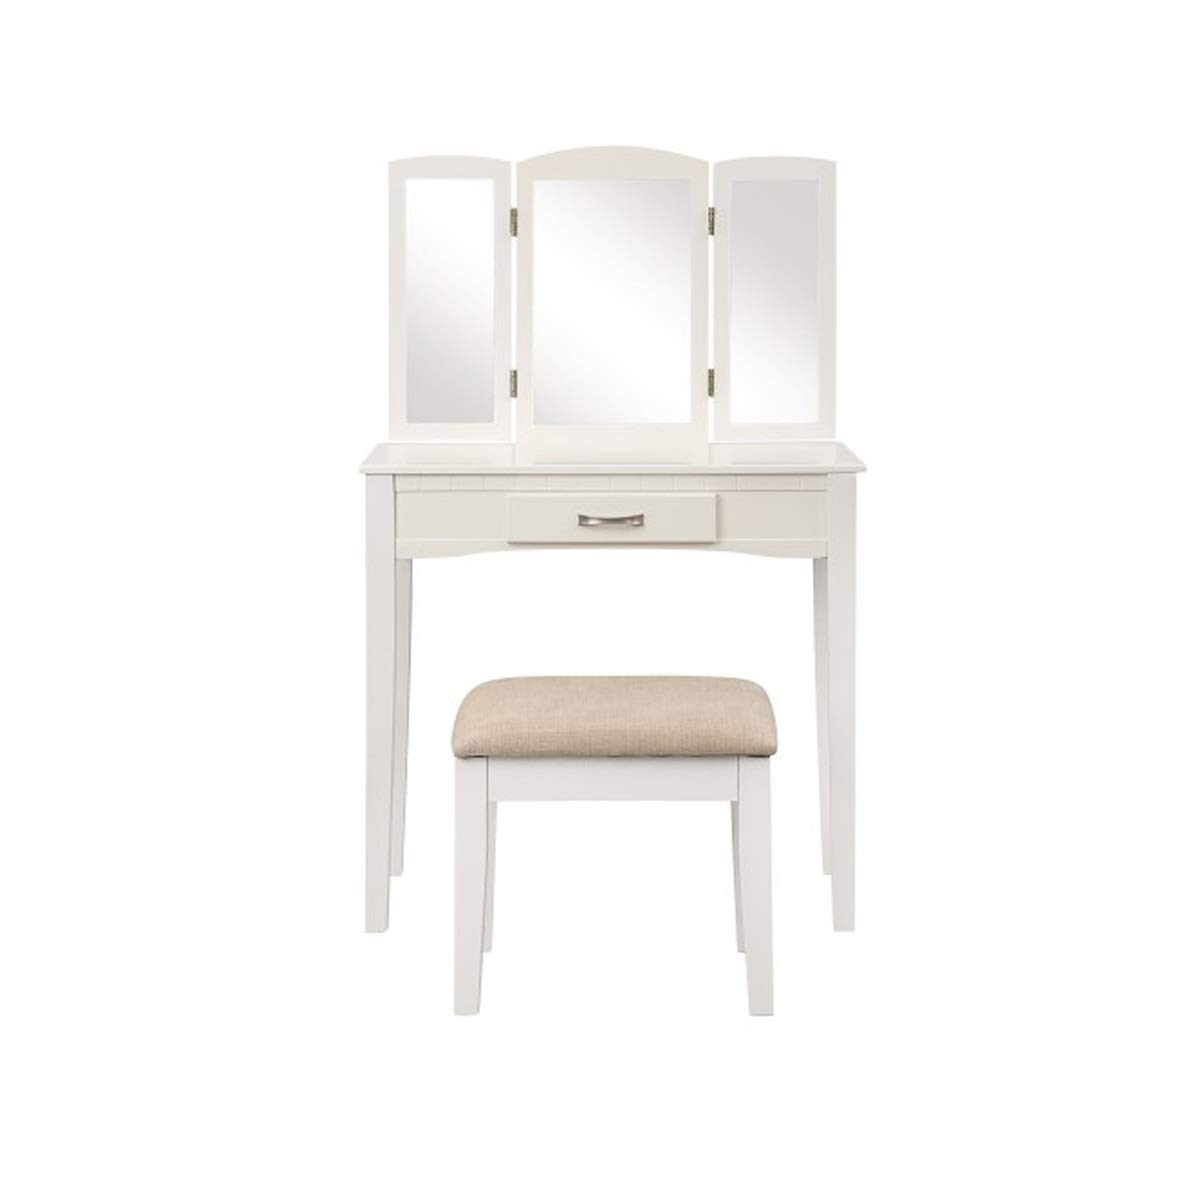 HXSD Dressing Table, Dressing Table, Mirror and Cushion Bench (White) ( Color : White )